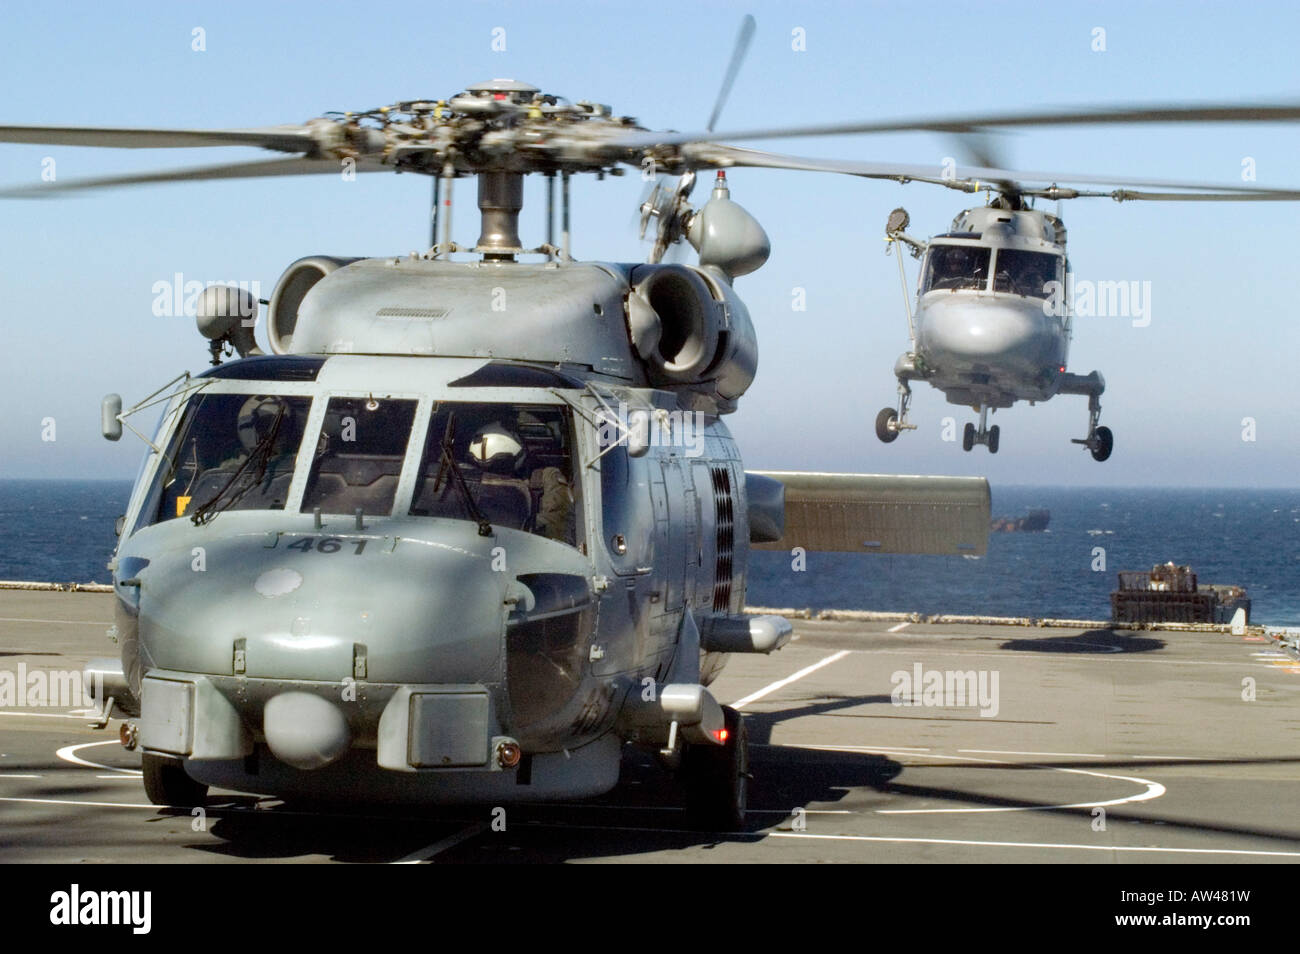 Nato Cooperation A US Navy Seahawk Helicopter On The Deck Of UK HMS Albion While French Lynx Landing